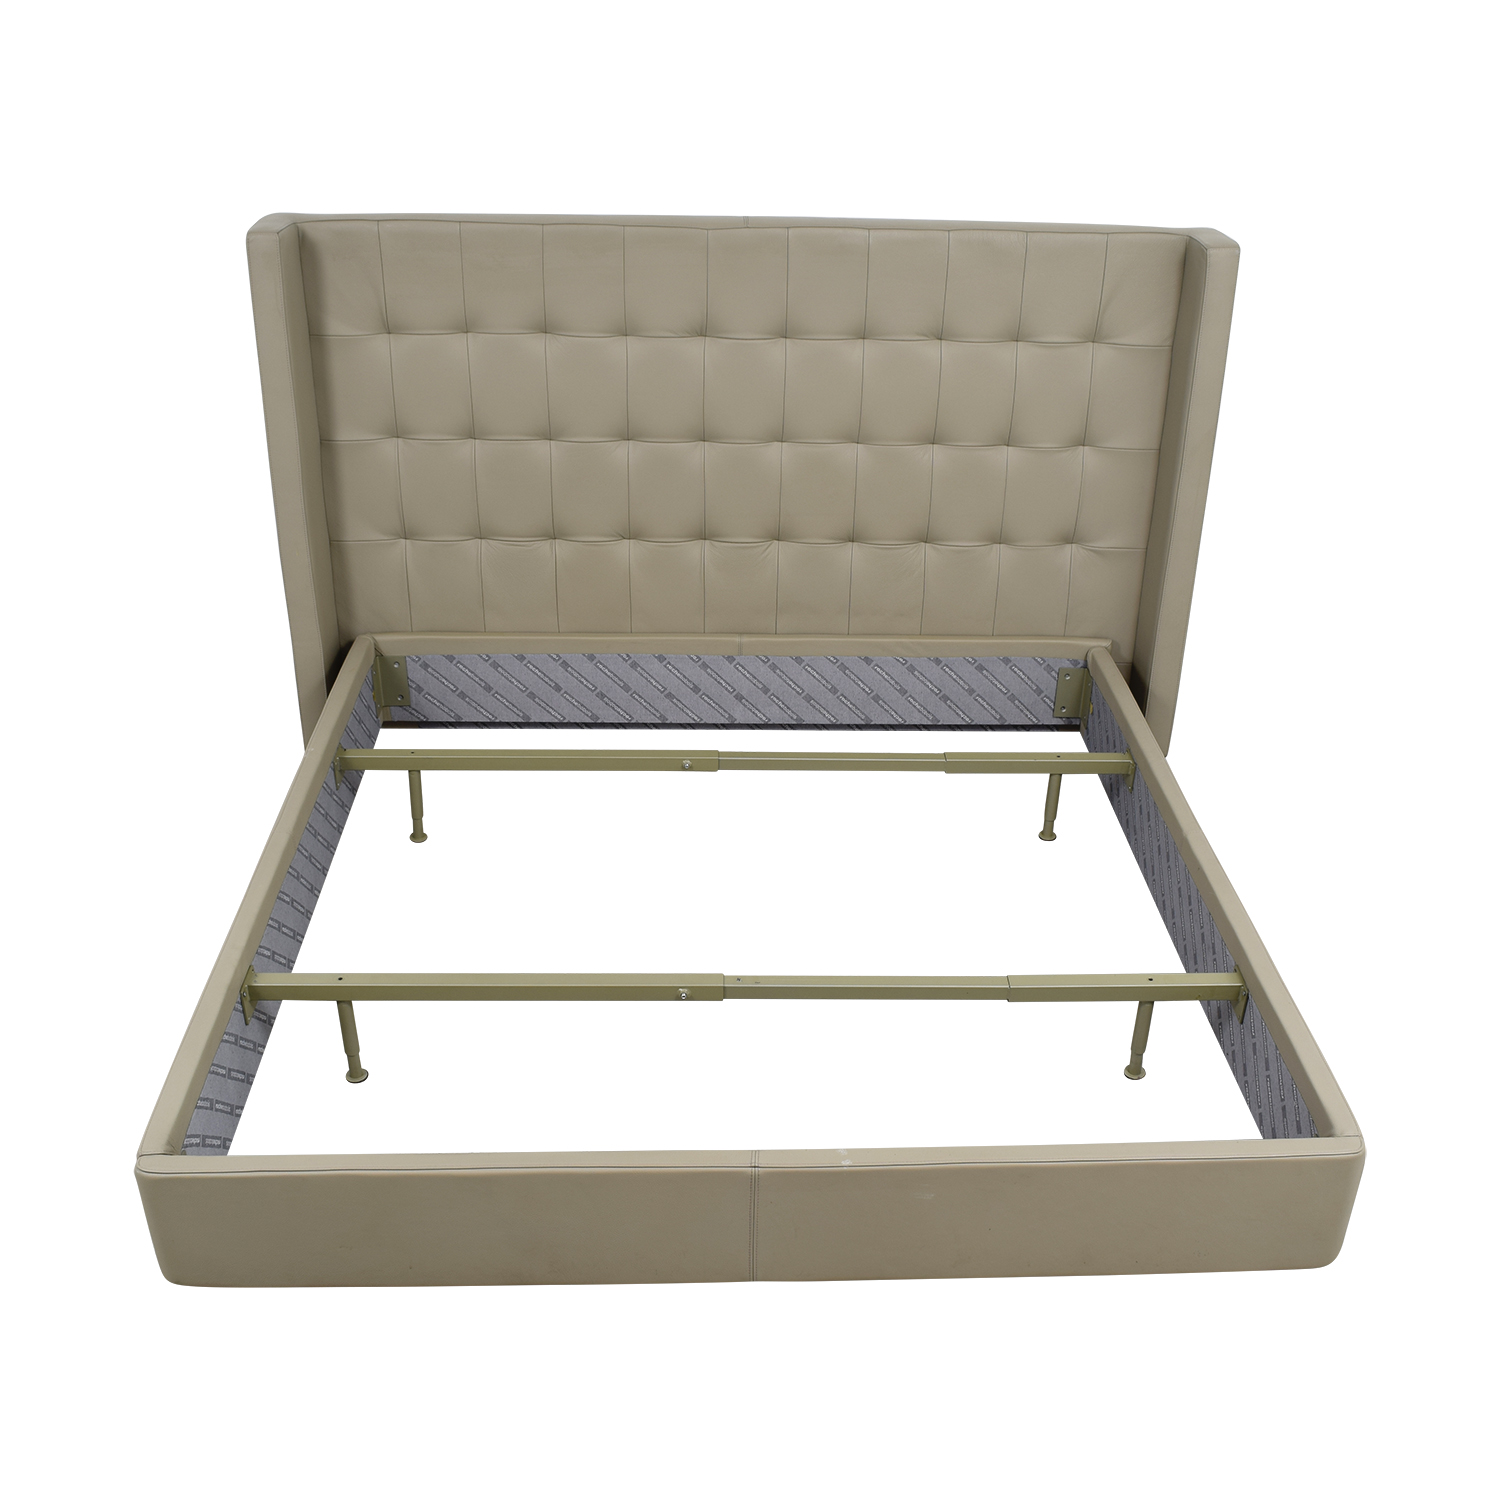 Roche Bobois Roche Bobois King Beige Tufted Leather Bed Frame coupon